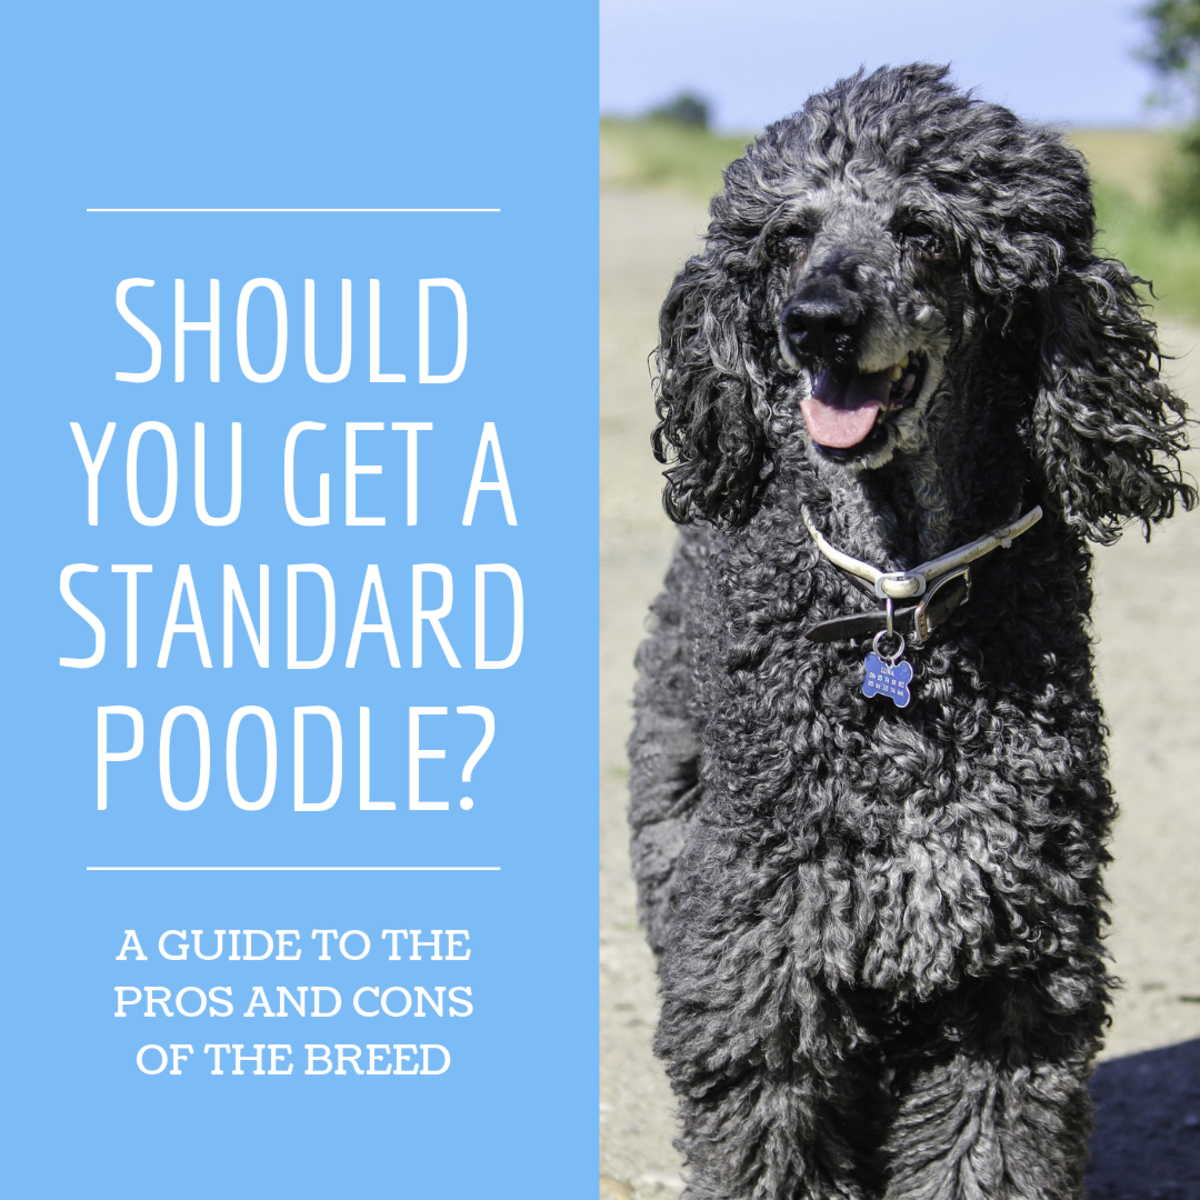 This guide will help you determine if a Standard Poodle is the right dog for you.